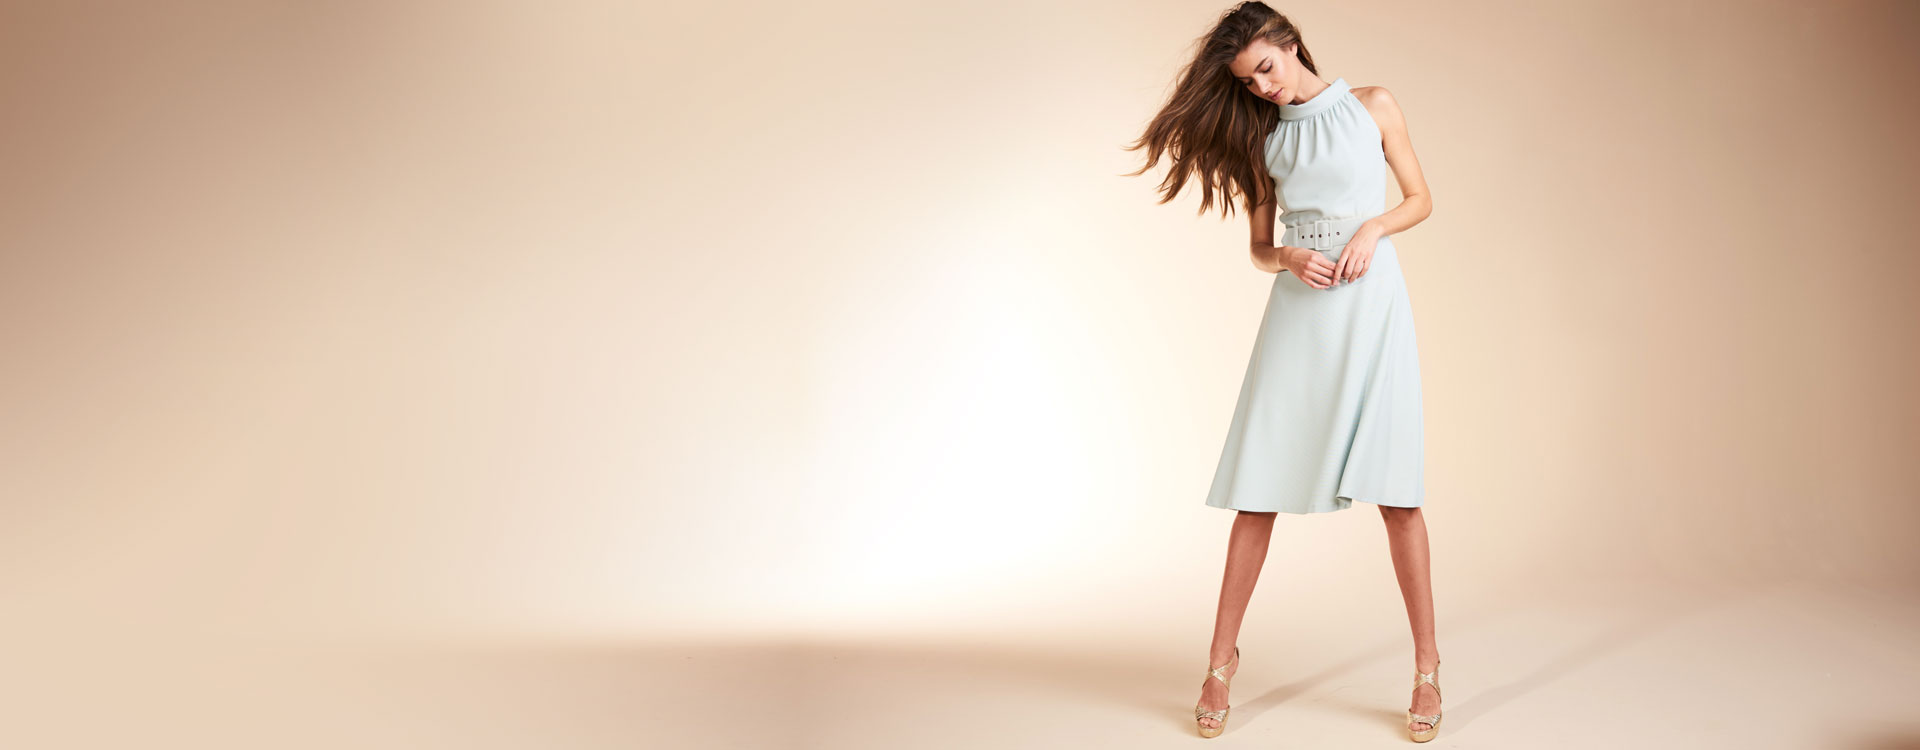 026612353f580 The perfect dress for every occasion - LaDress by Simone